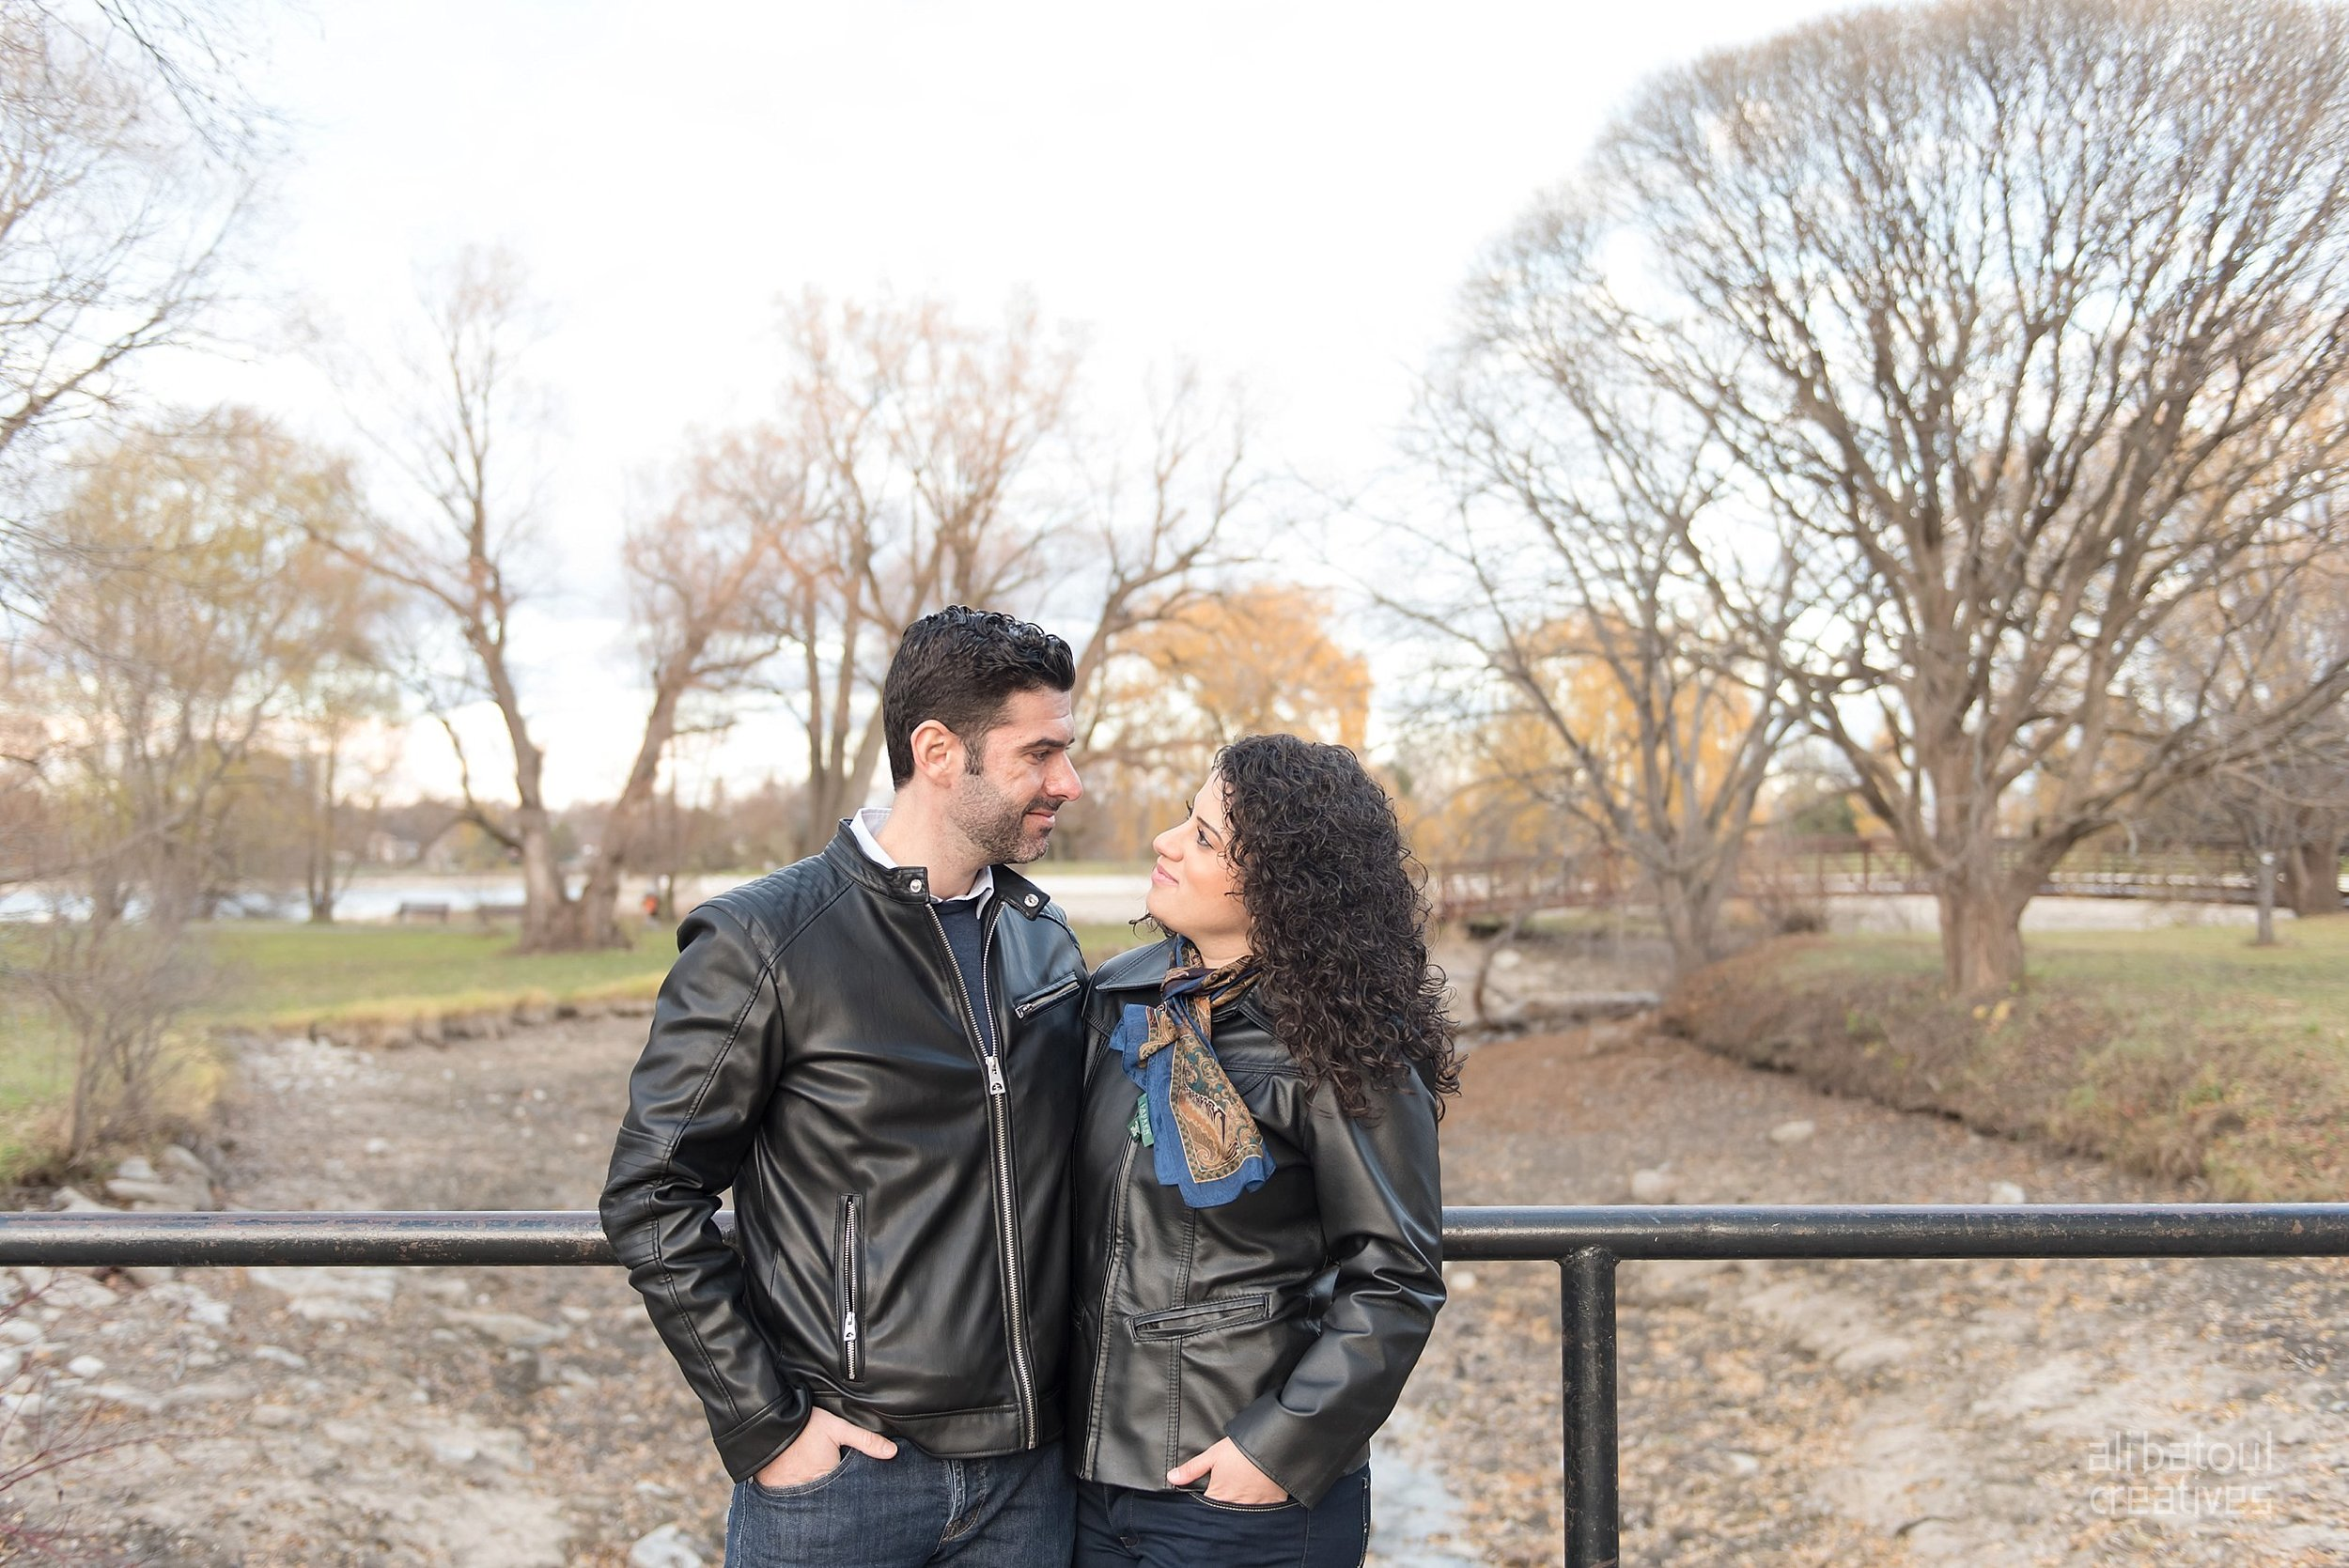 Isabelle + Arman Couples Shoot - Ali Batoul Creatives - Blog-49_Stomped.jpg